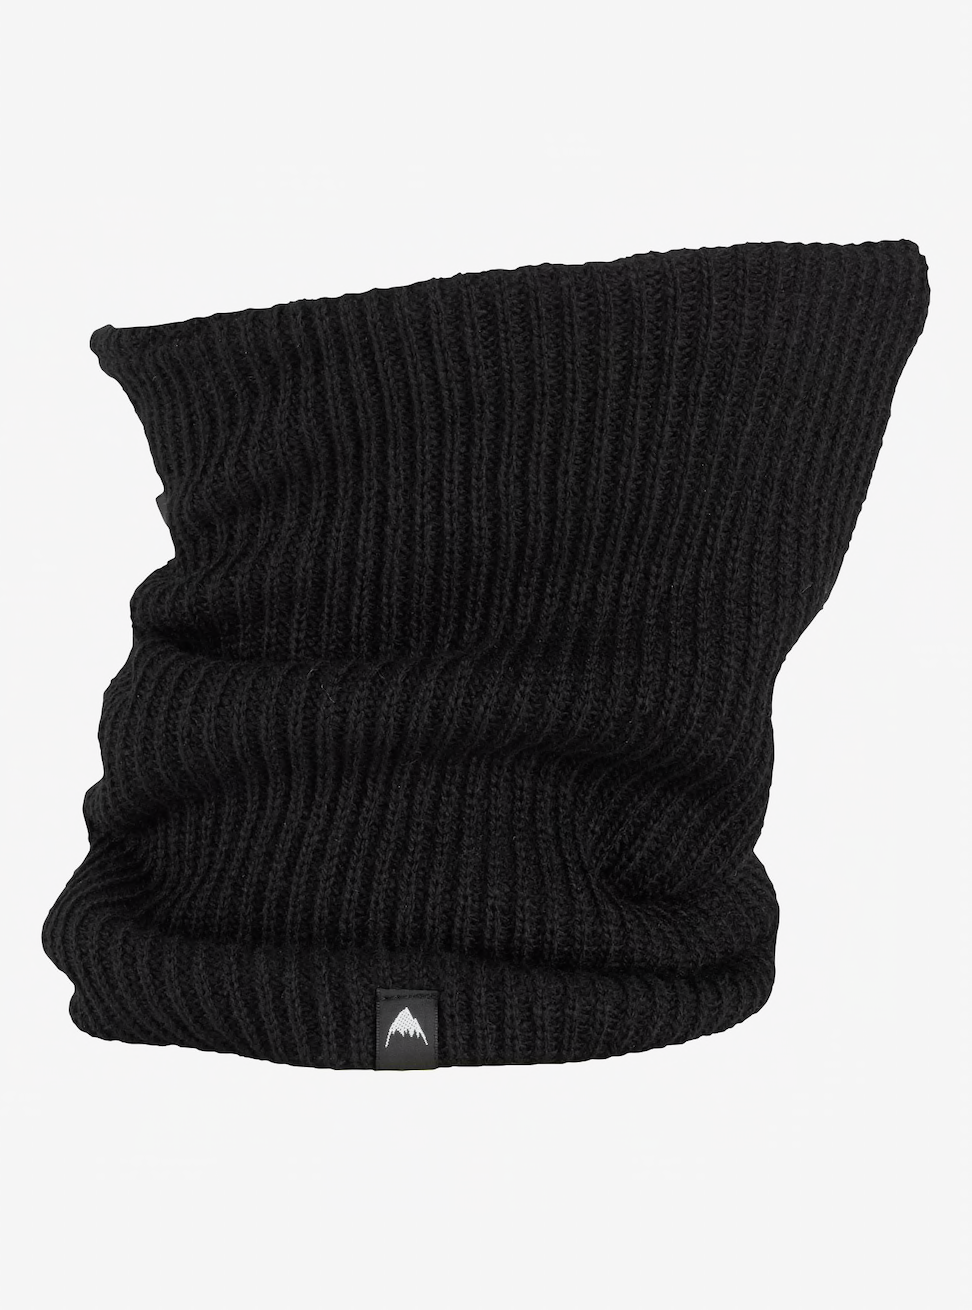 2019 Burton Truckstop Neck Warmer - Black